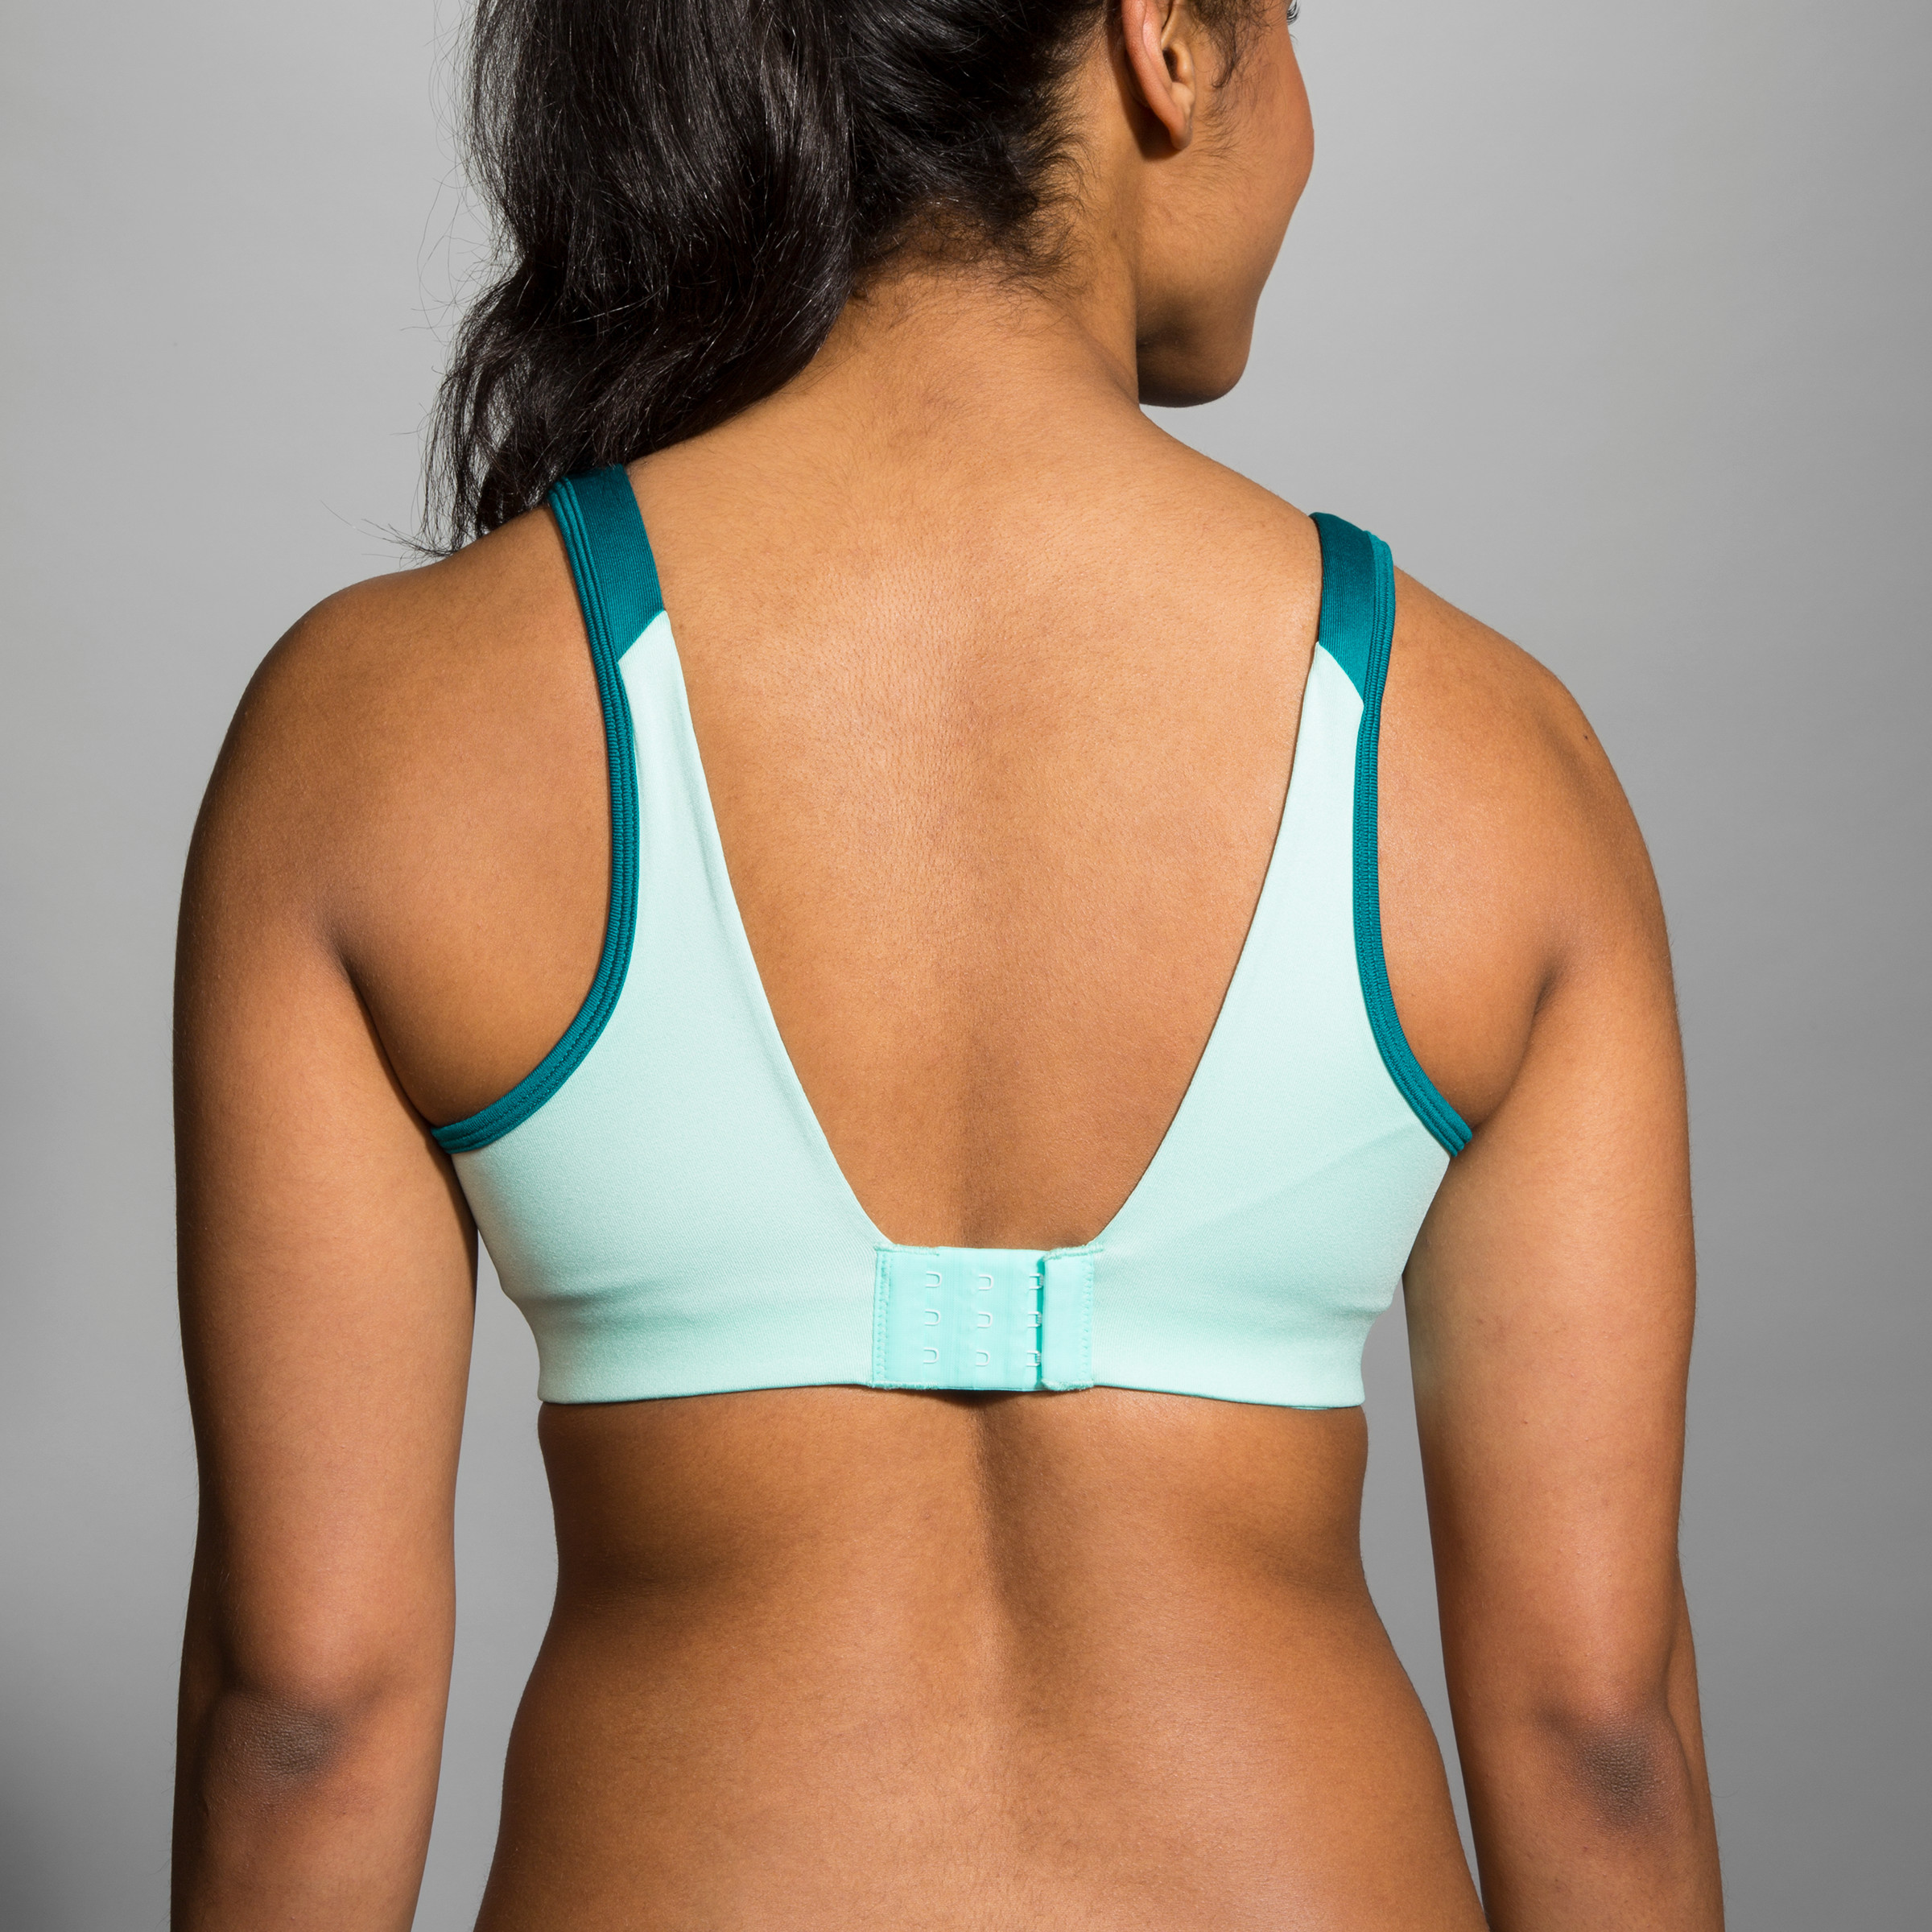 f381aadf07675 Our  1 sports bra of all time (currently  2!) the Fiona is a tried an true  bra for many women. It s SO easy to get on and off (like a regular bra) ...